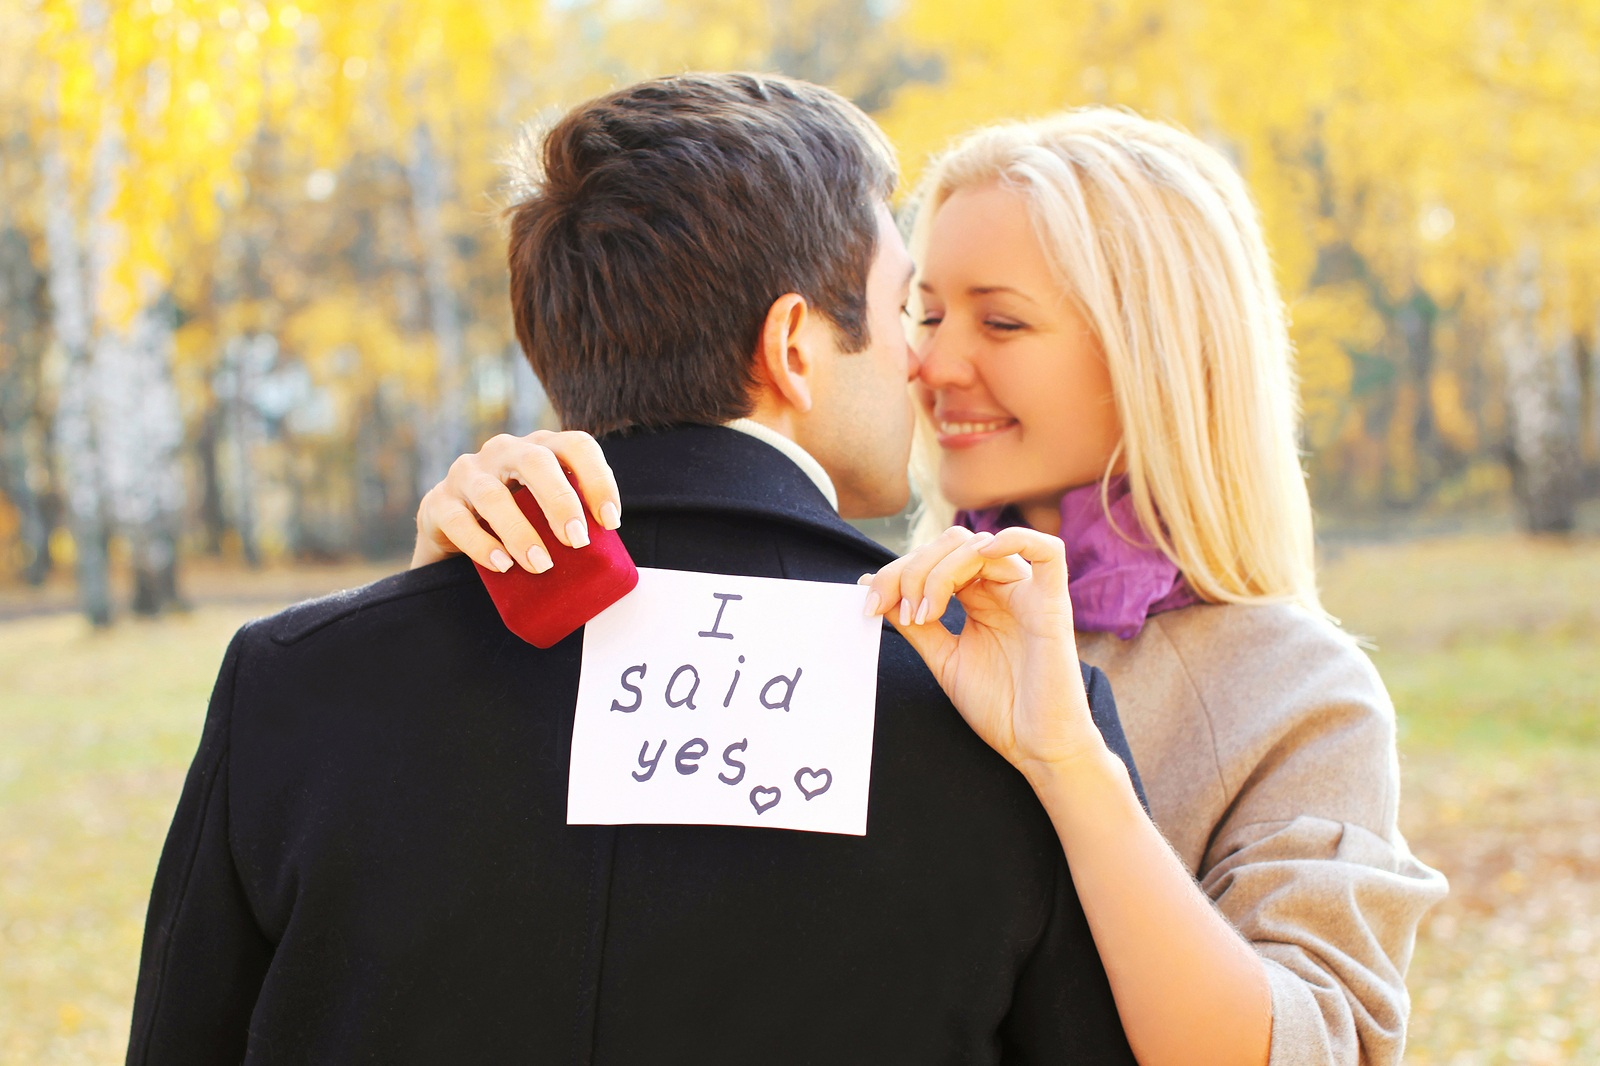 Engagement_Couple-proposal-YES-1.jpg